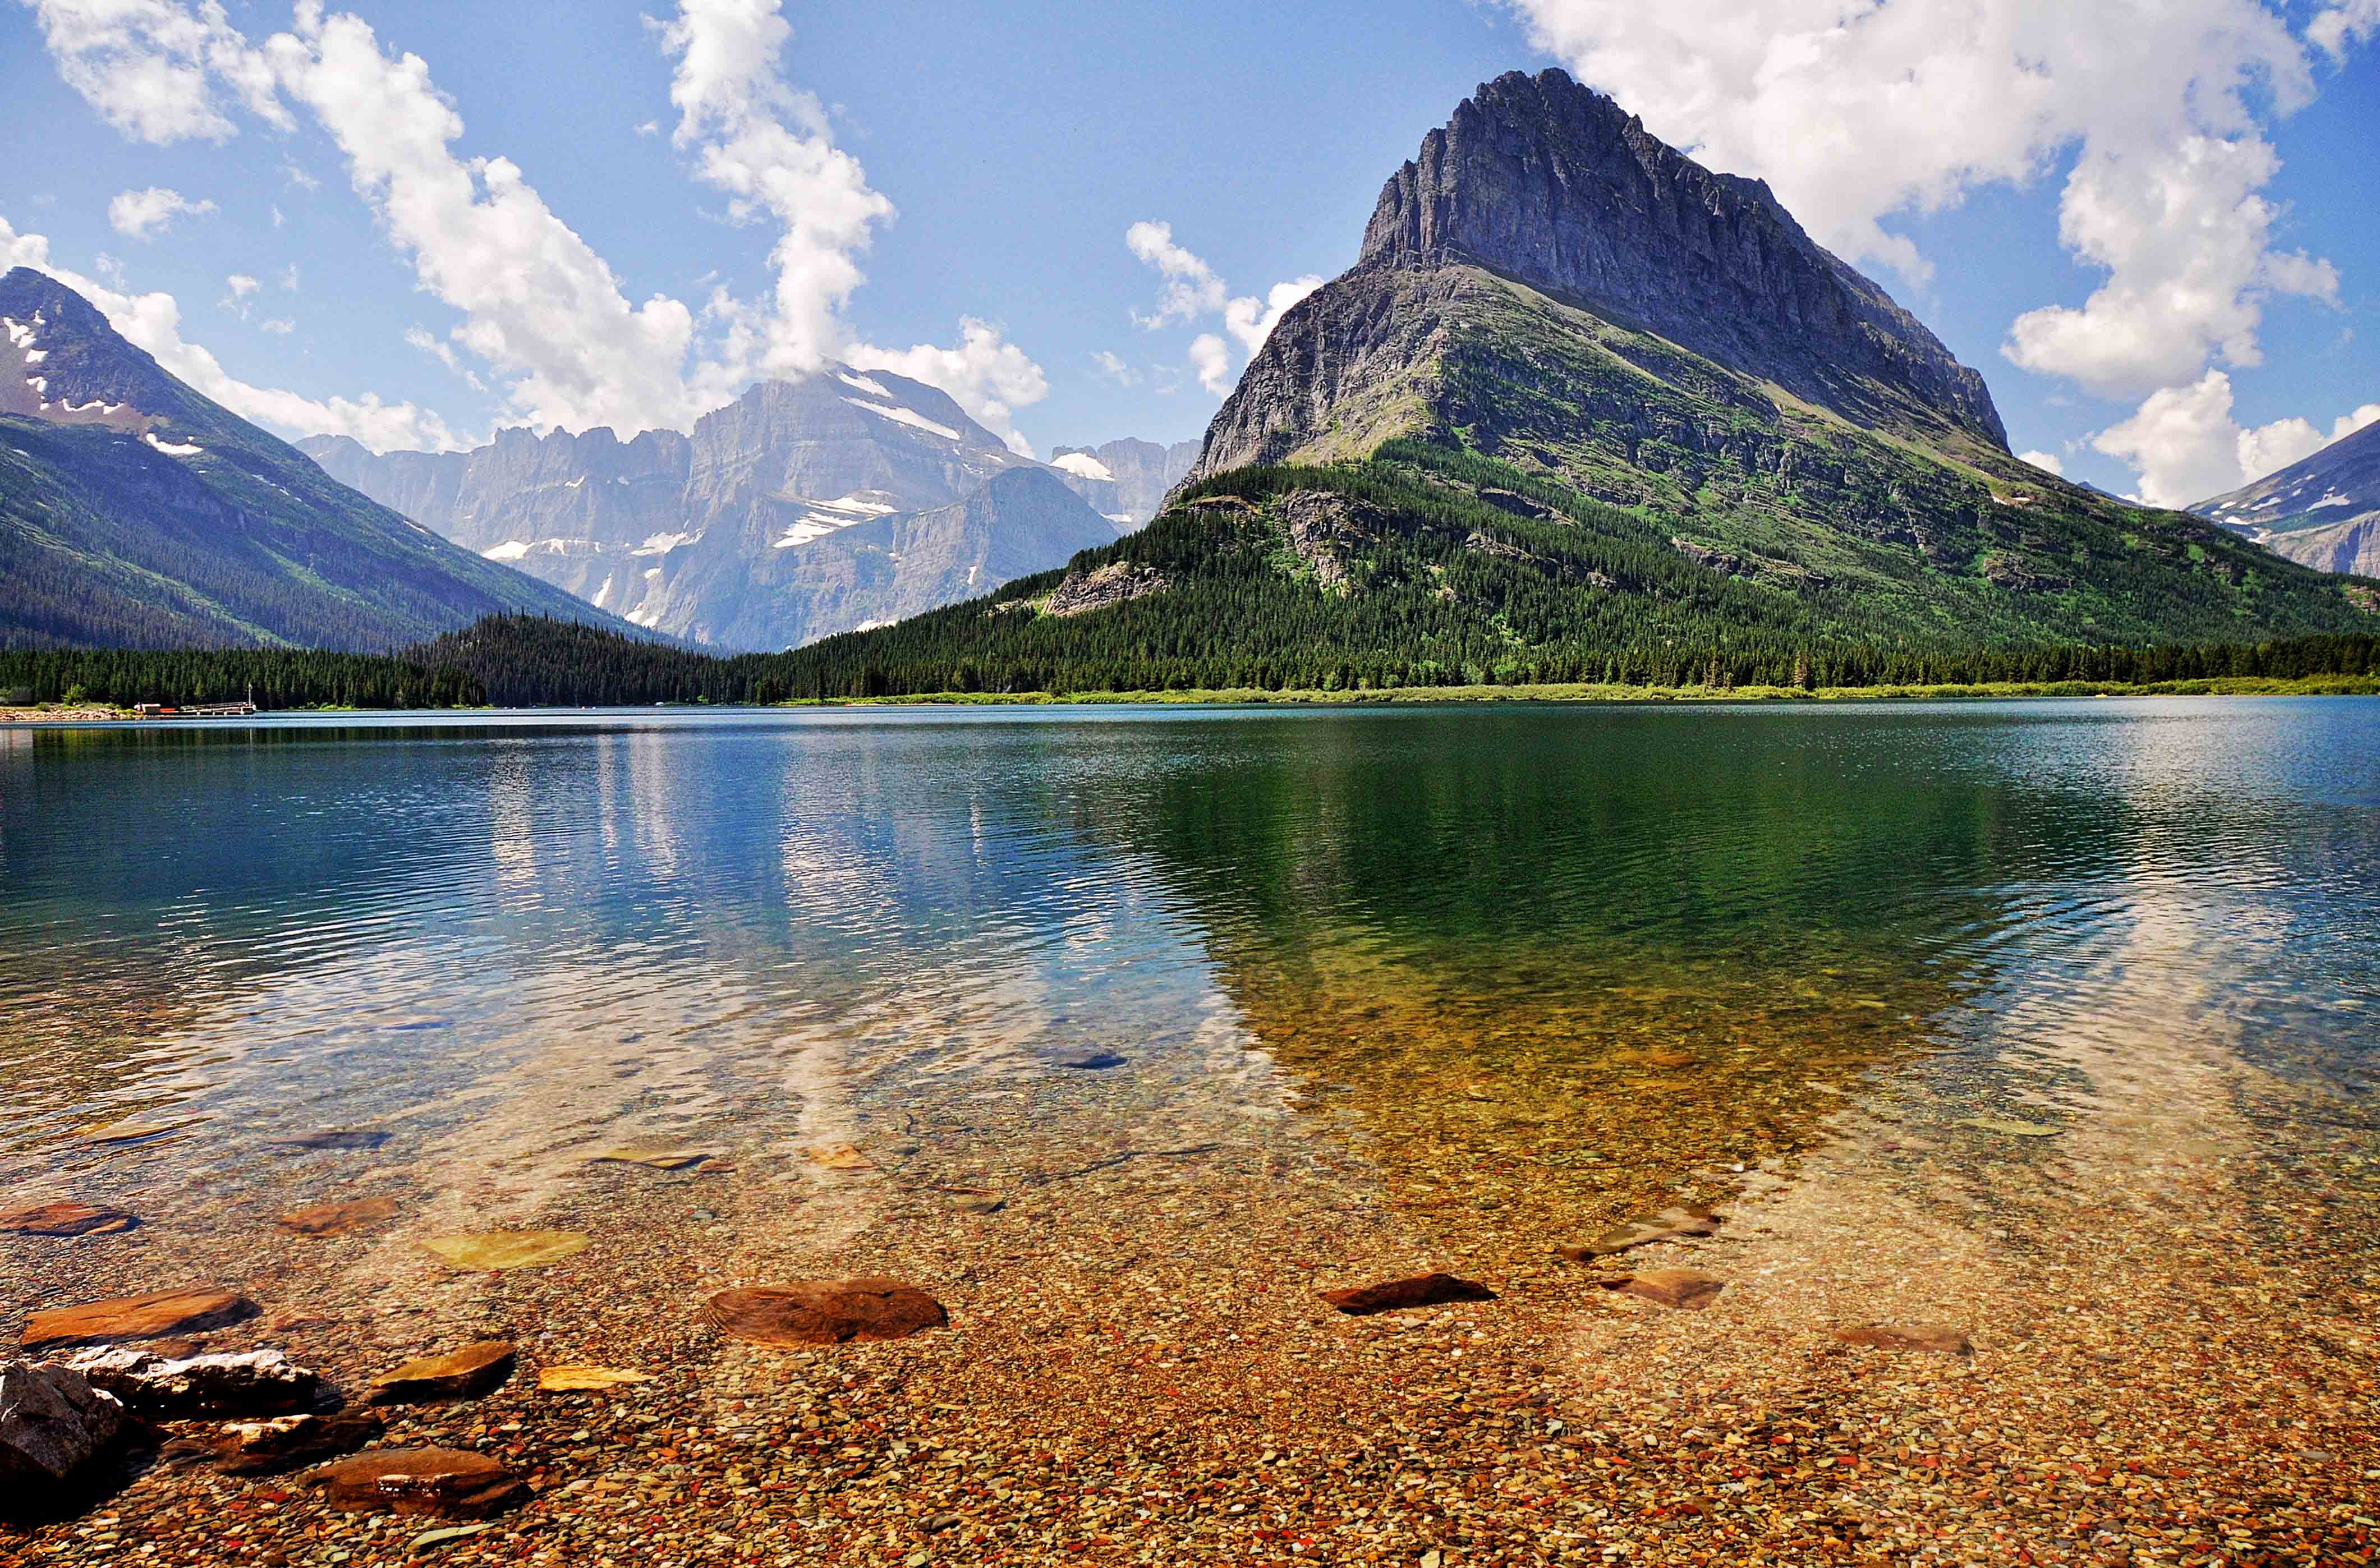 colorado map in usa with Montana Lakes Are The Best on Montana Lakes Are The Best together with Area Map likewise Cudillero asturias spain 13627 besides Walmart Gunnison Colorado Co Usa likewise 29139521910.